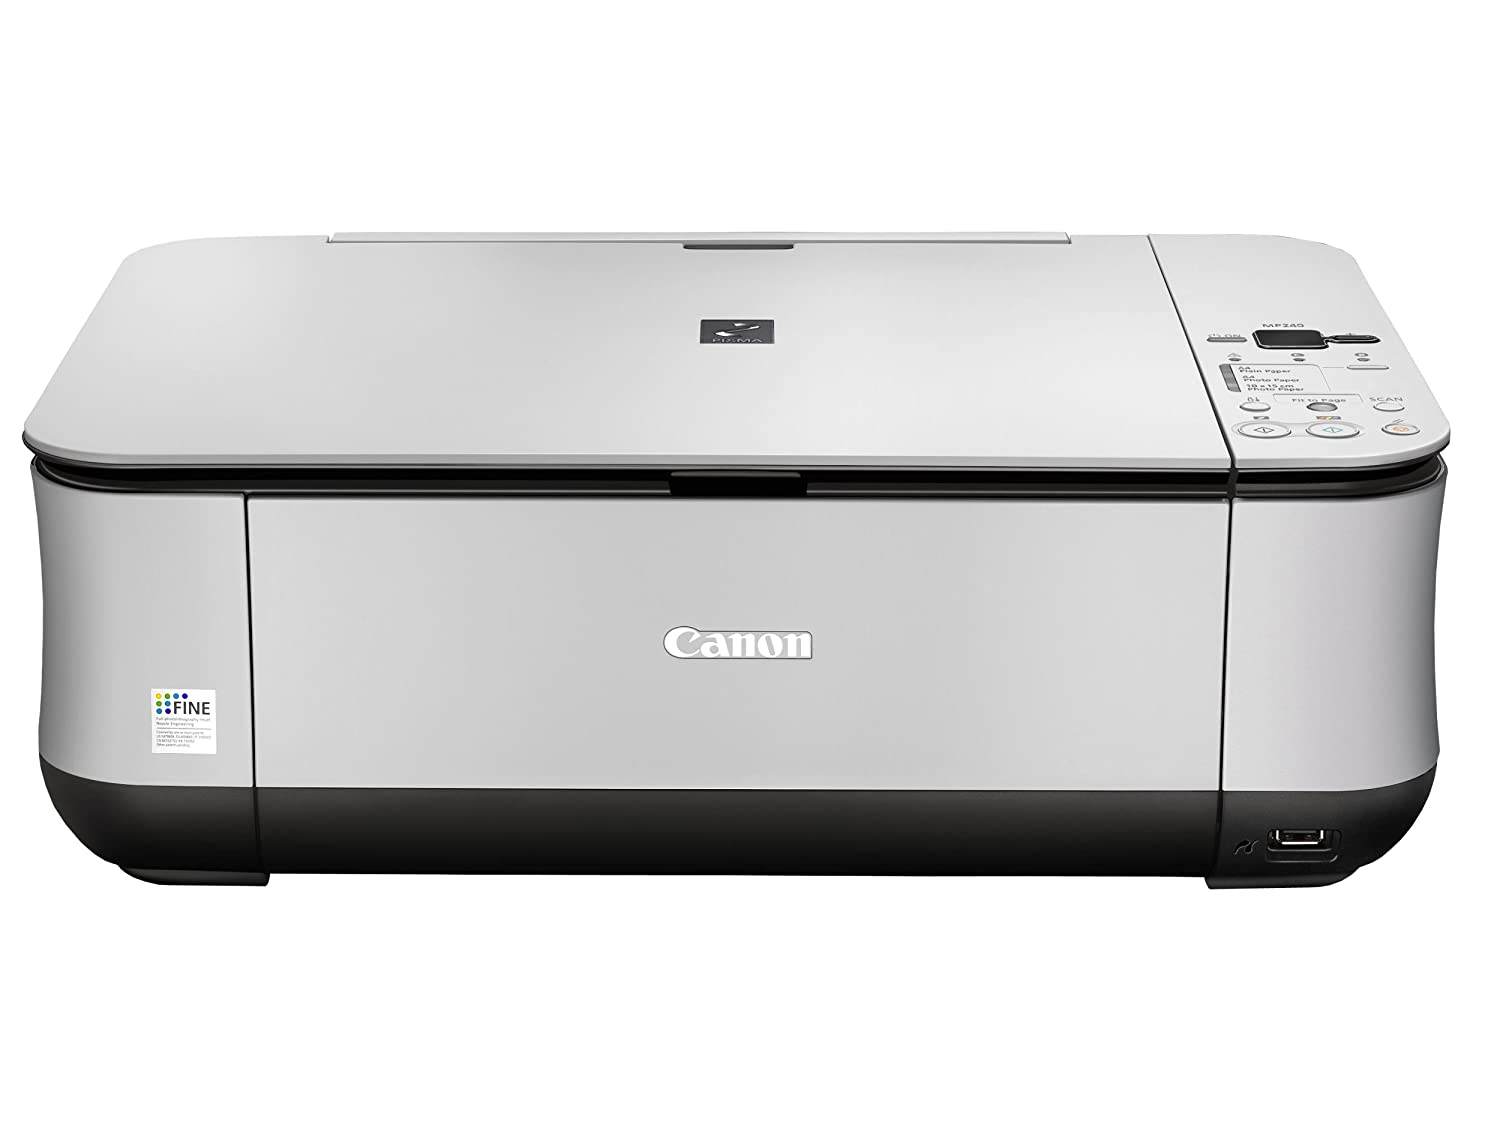 Canon multifunction printer k10356